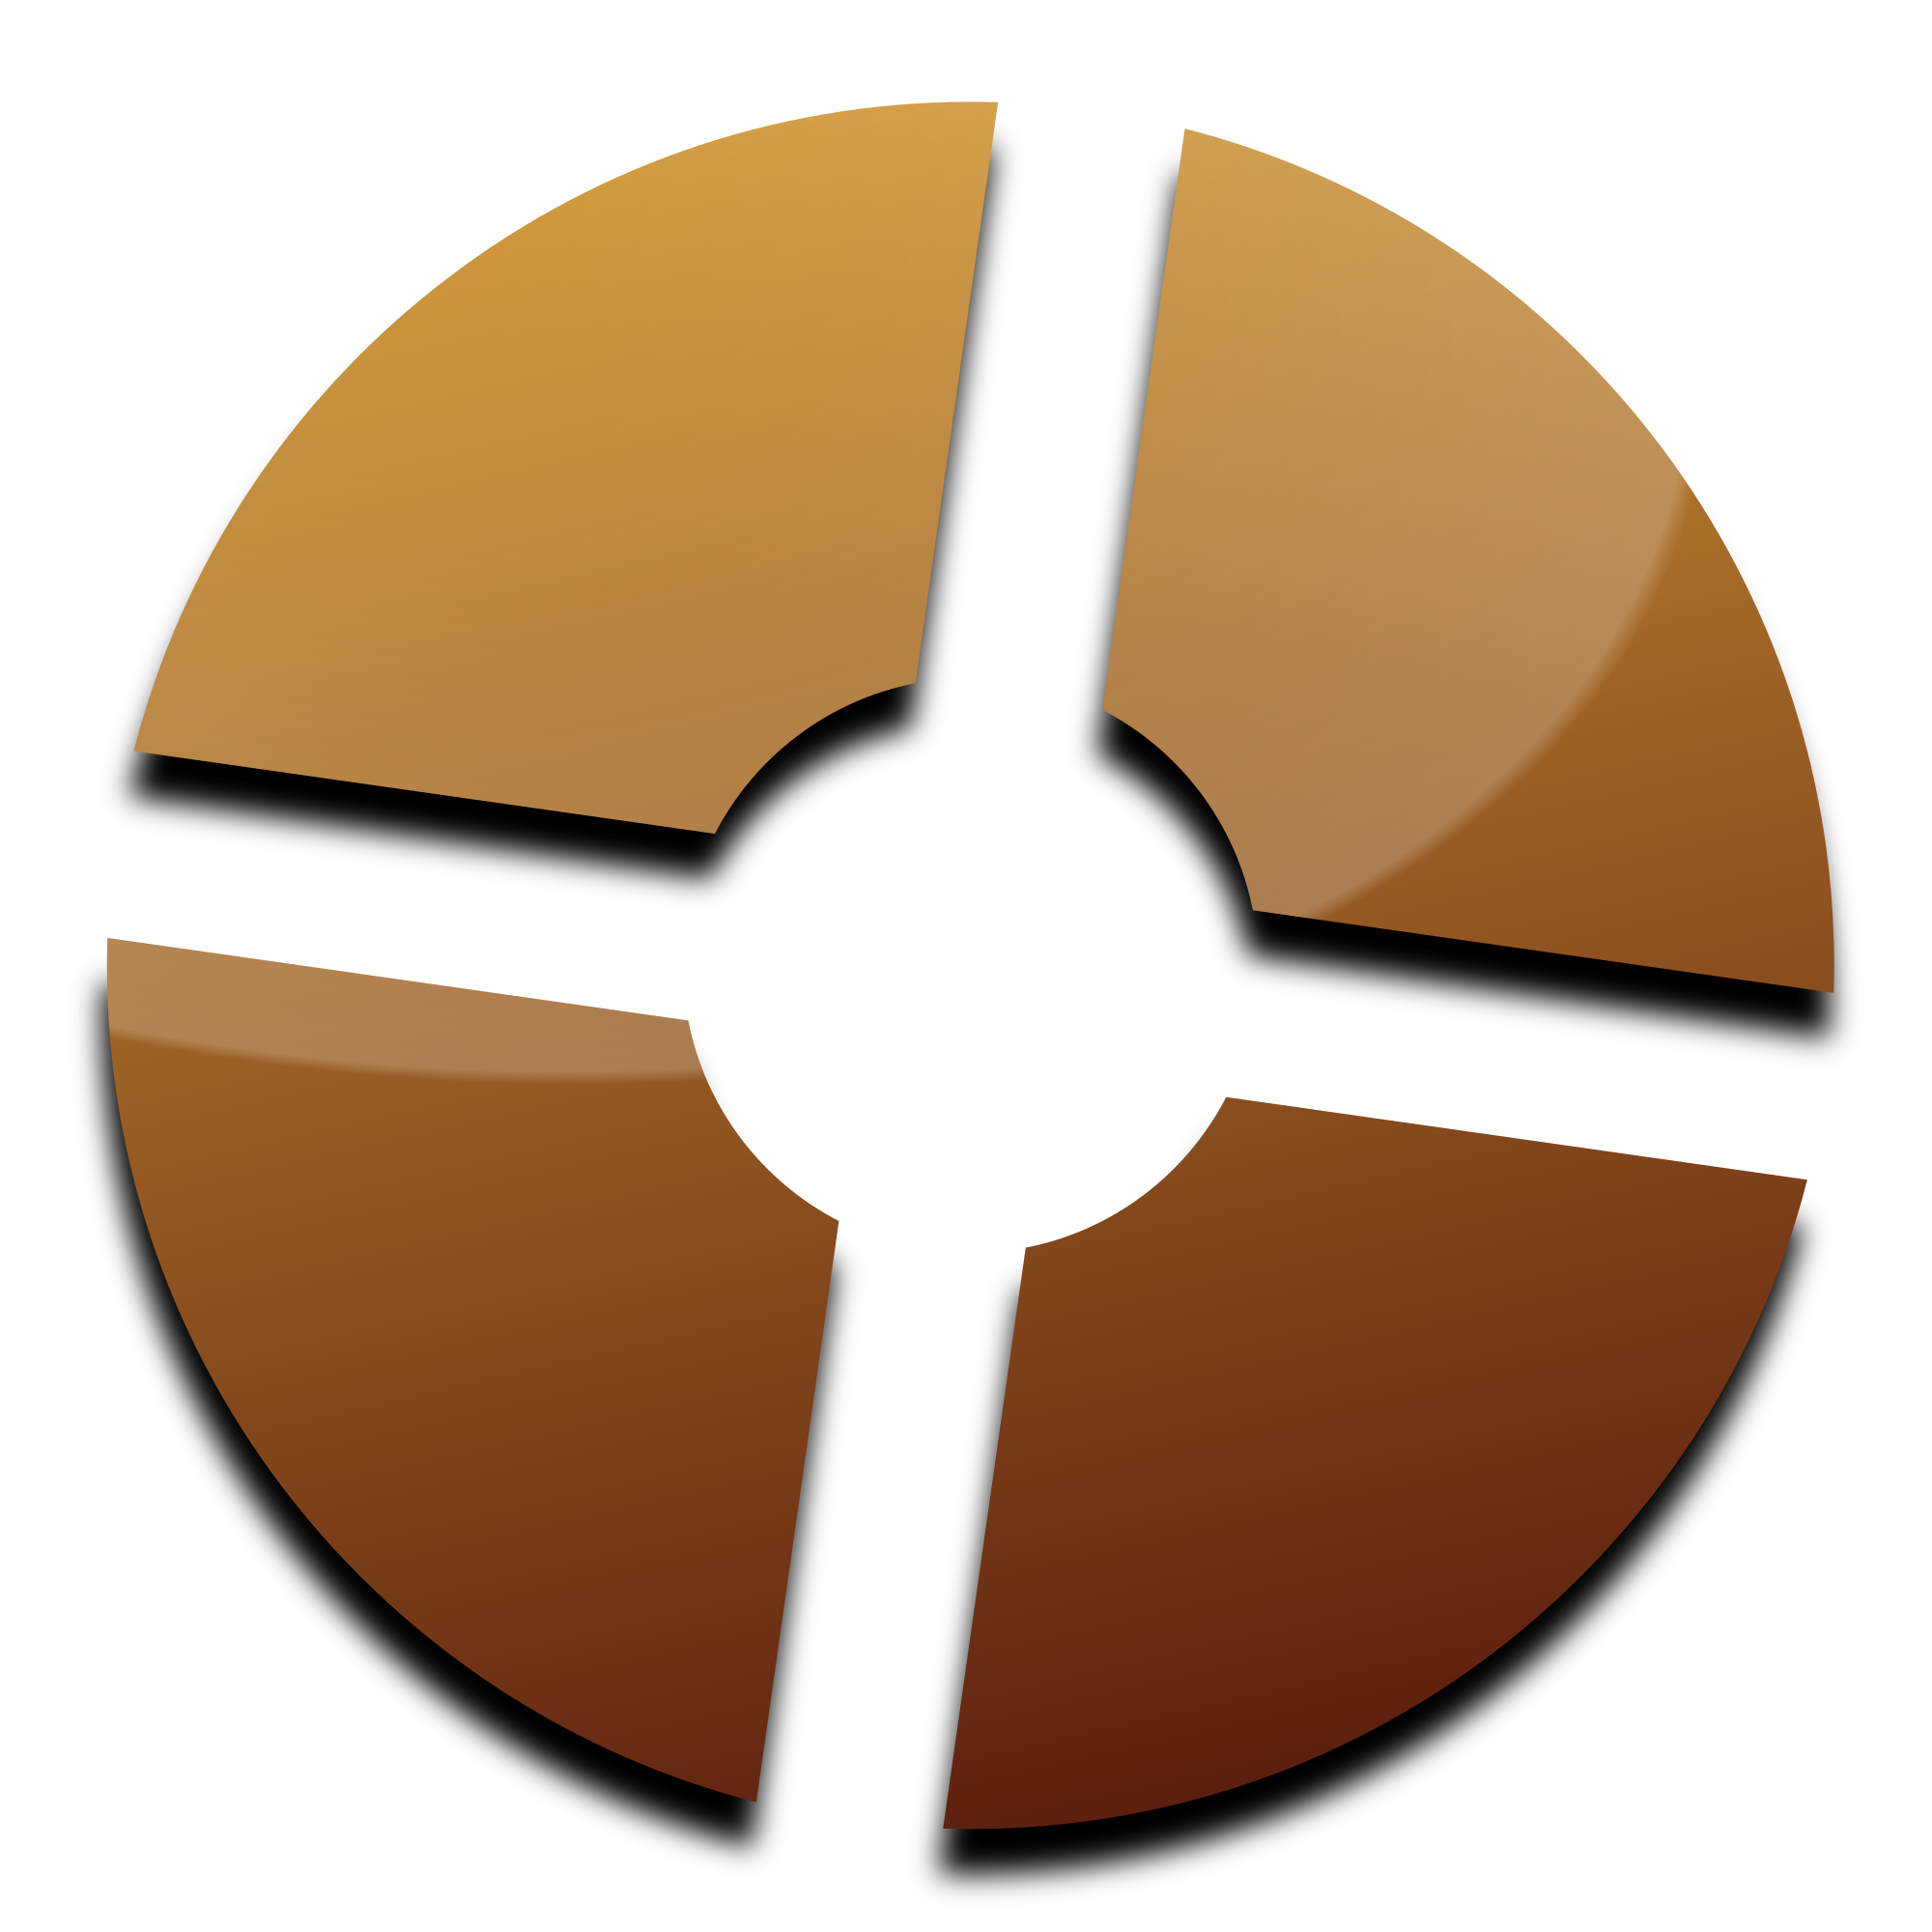 Covered clipart tf2 File:Team Commons logo Open style